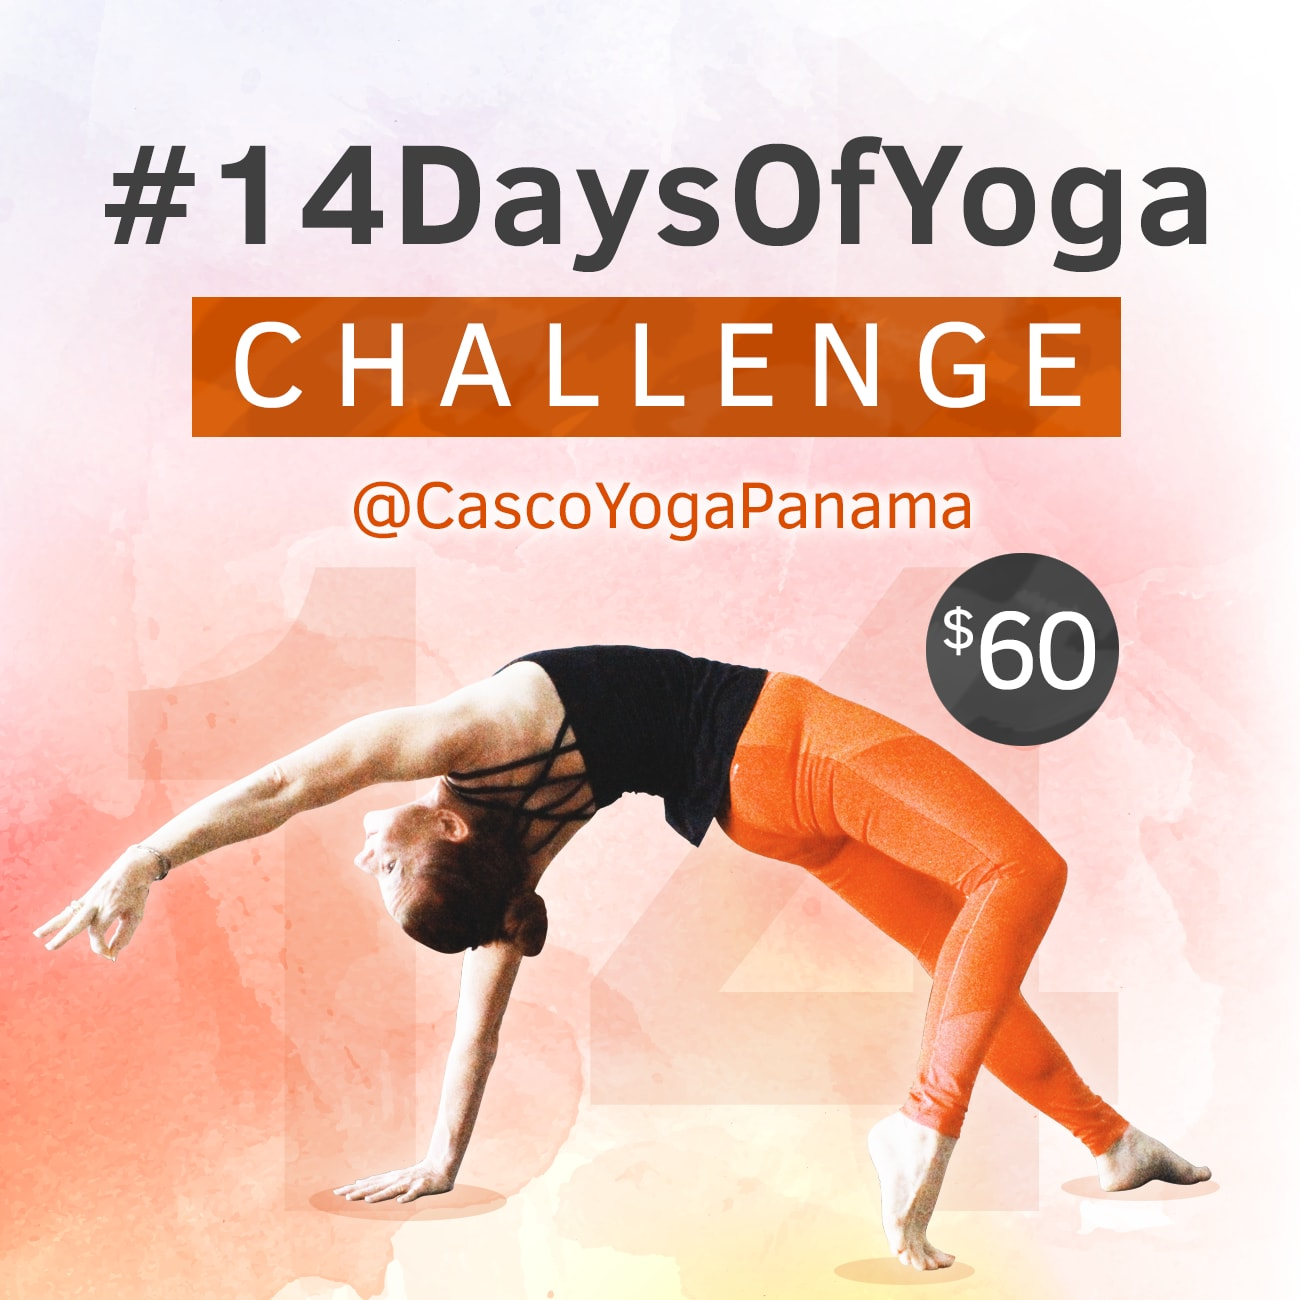 14 Days Of Yoga Challenge at Casco Yoga Panama, Casco Viejo. Panama City. Yoga En Panama